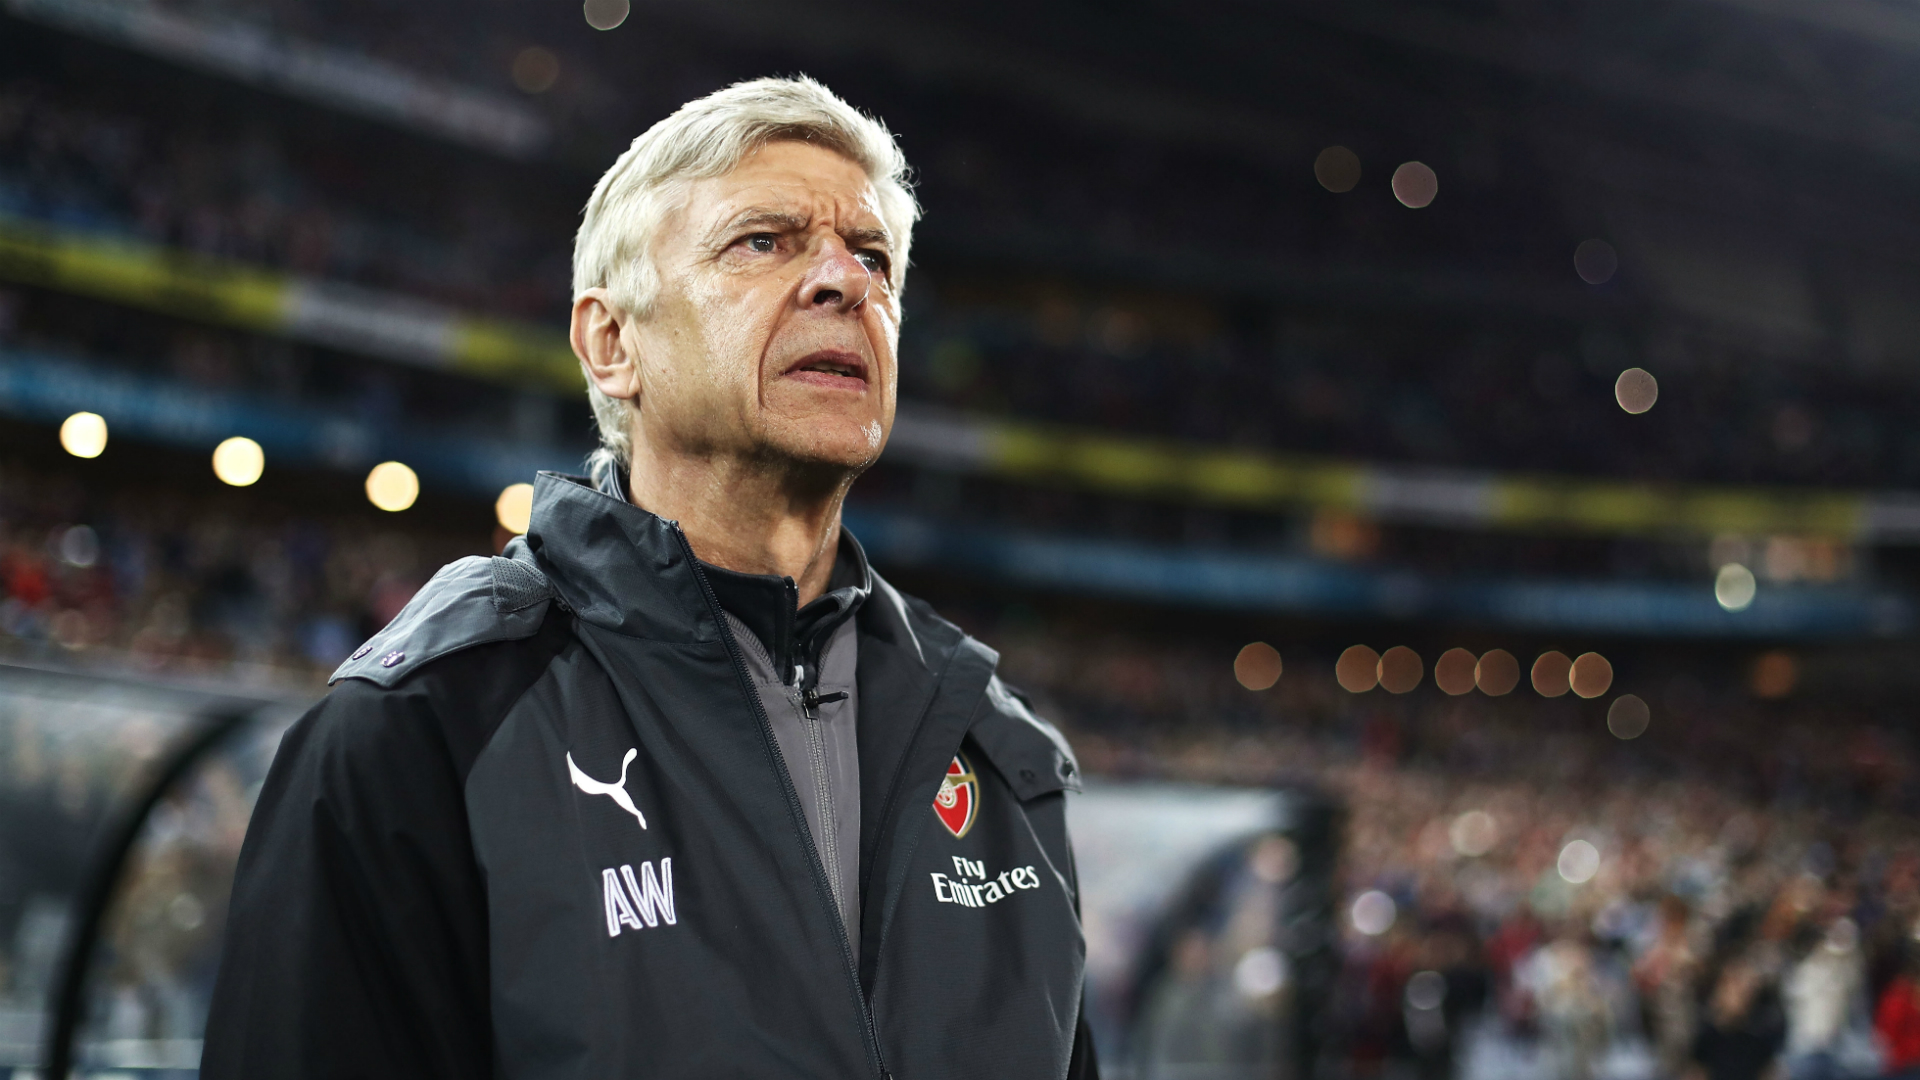 Arsenal tried to sign Pique, Fabregas and Messi - Wenger